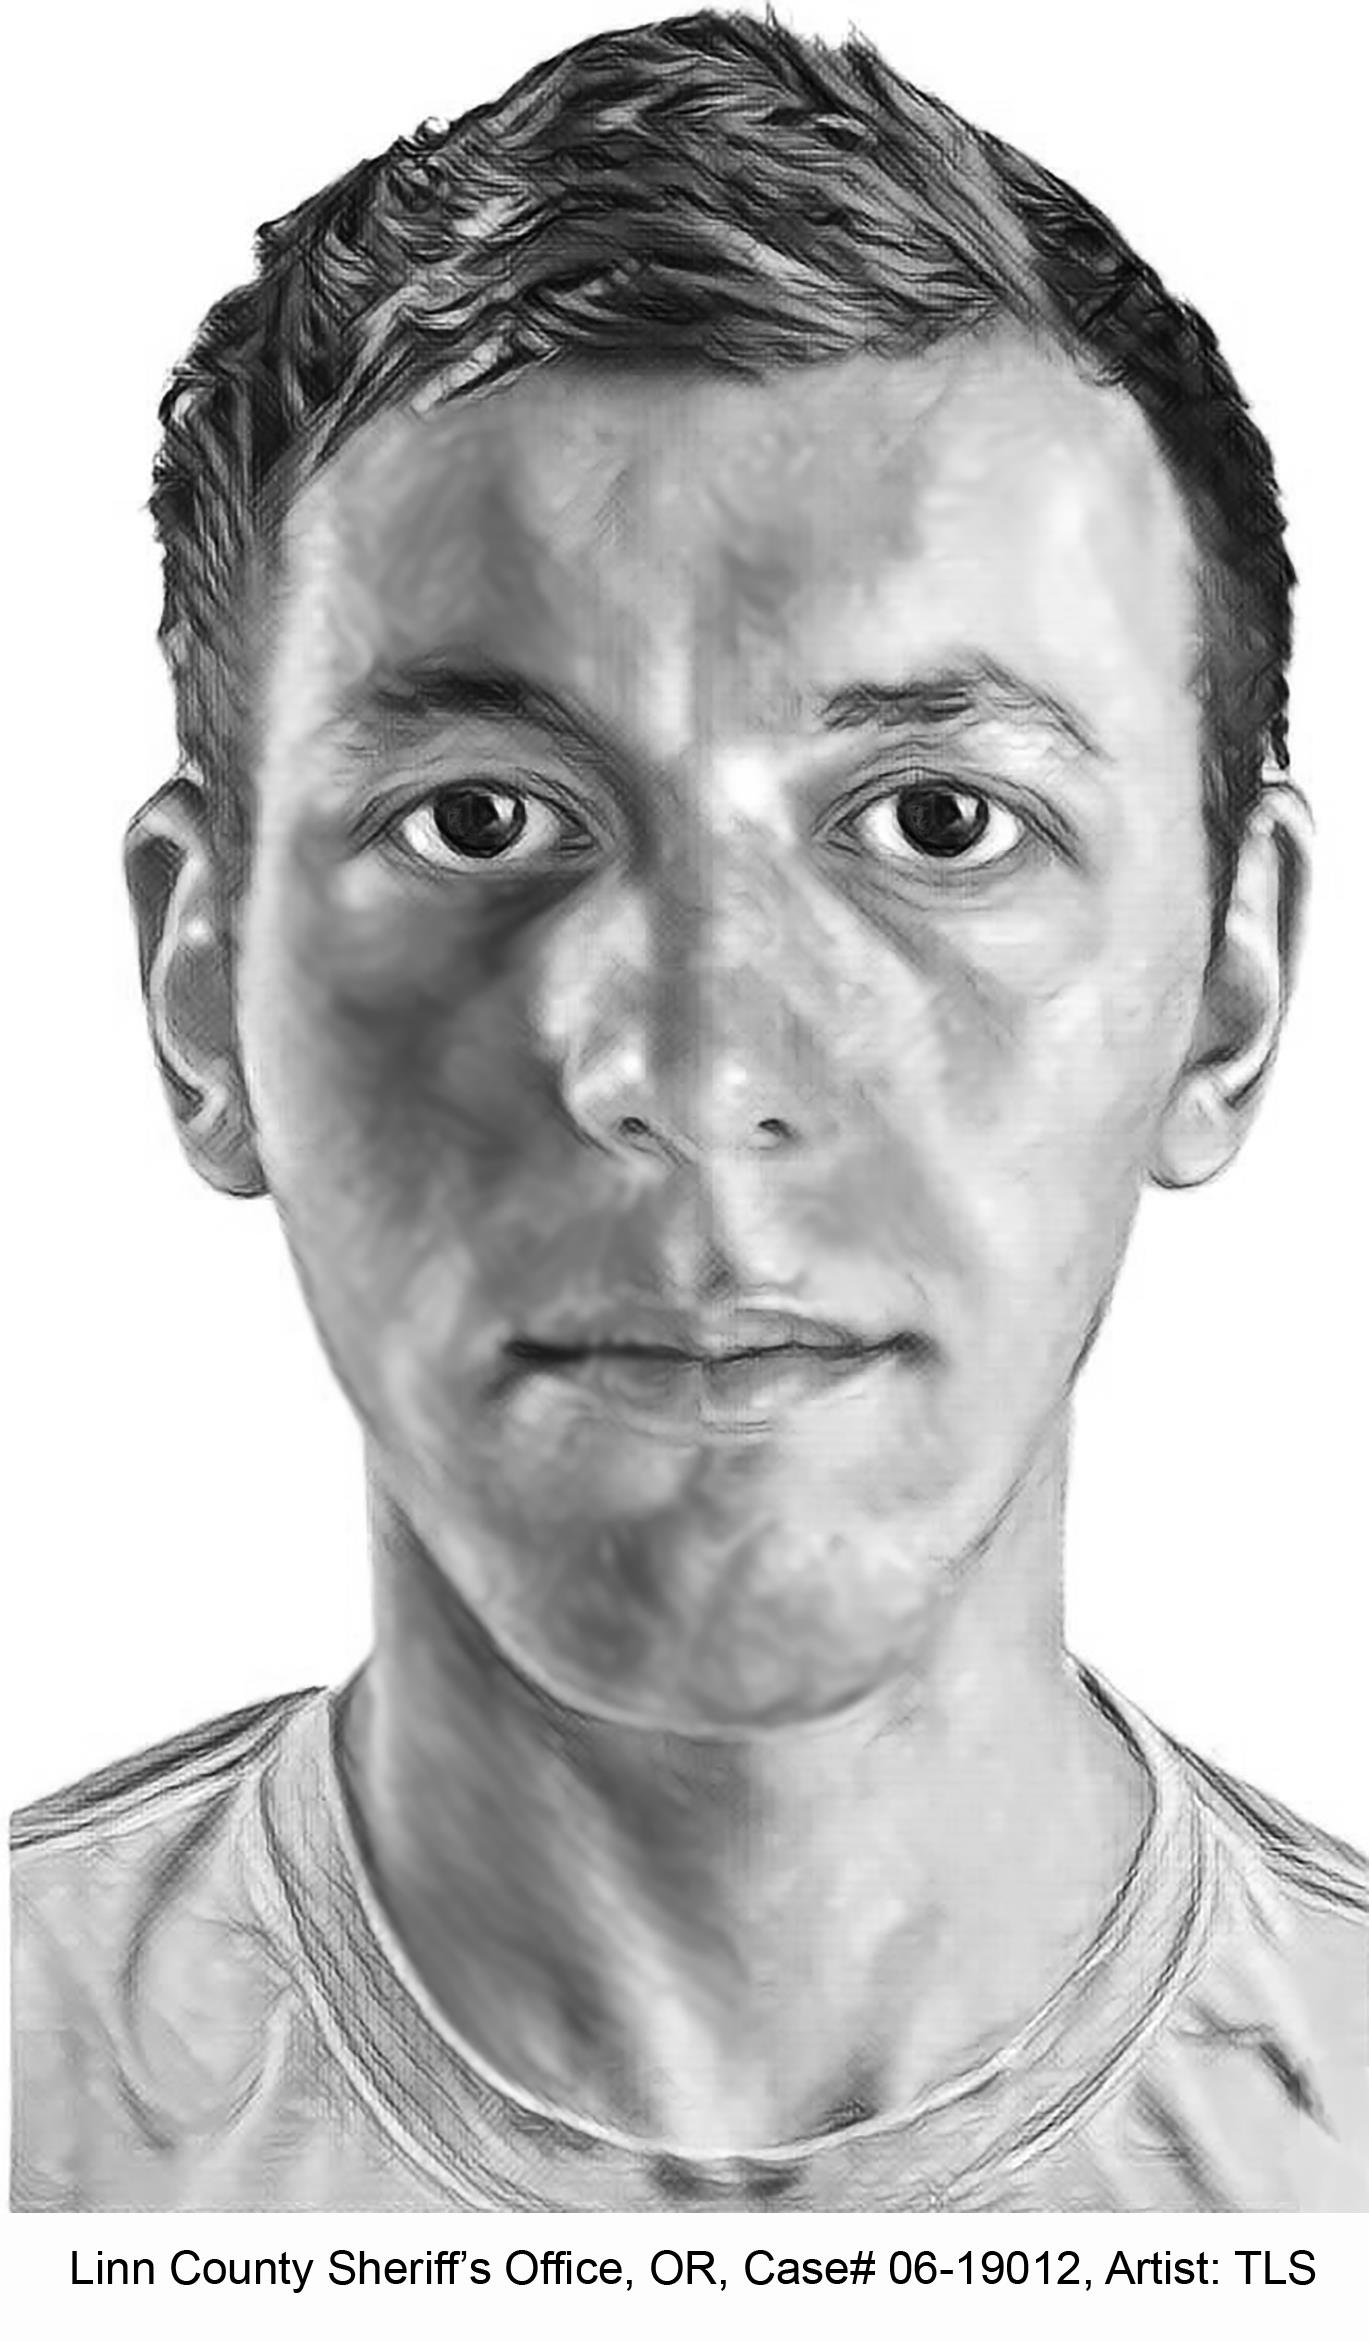 Linn County John Doe